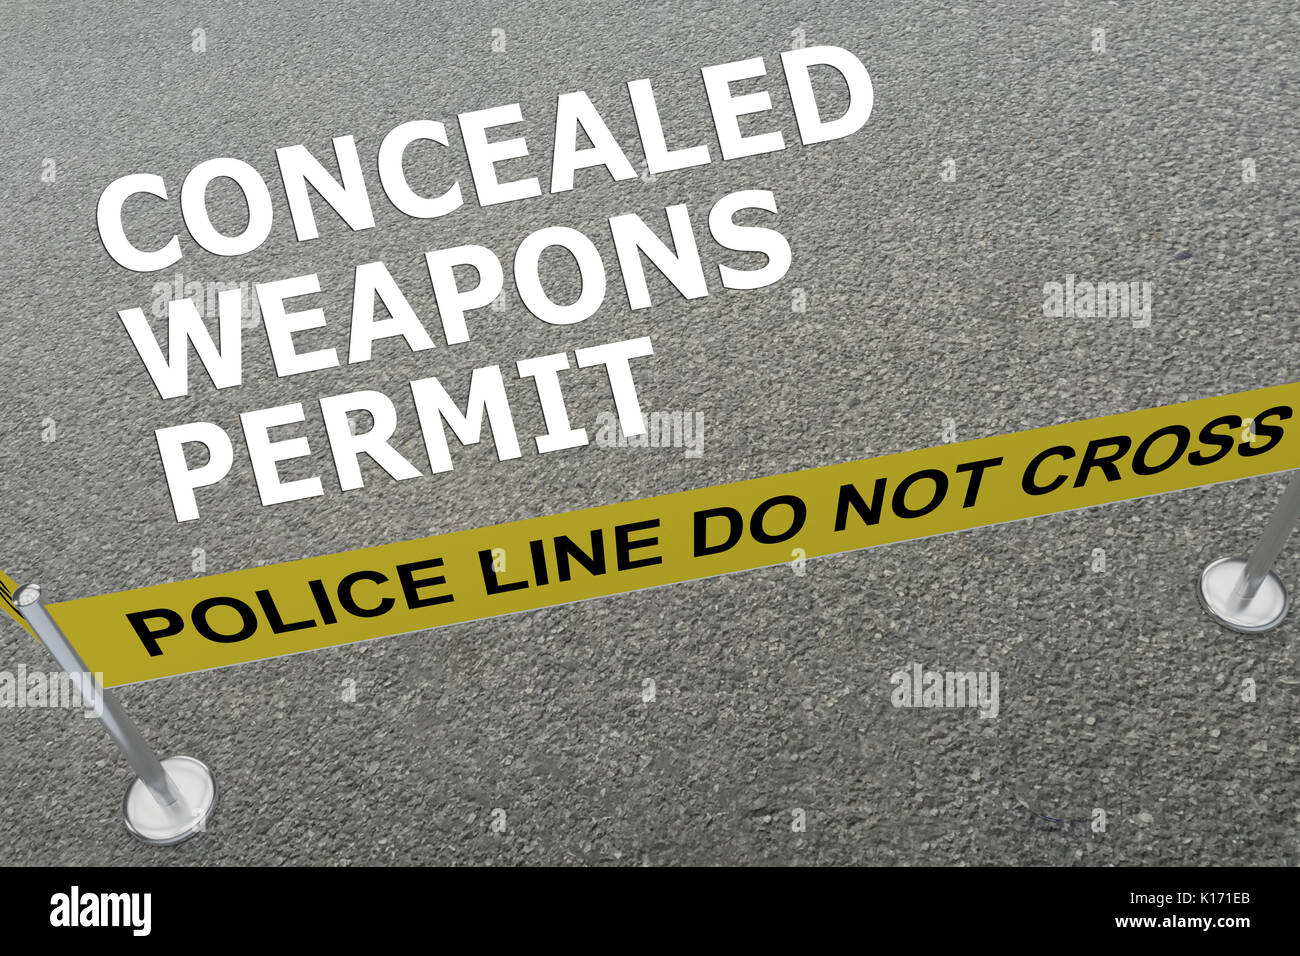 3D illustration of 'CONCEALED WEAPONS PERMIT' title on the ground in a police arena - Stock Image